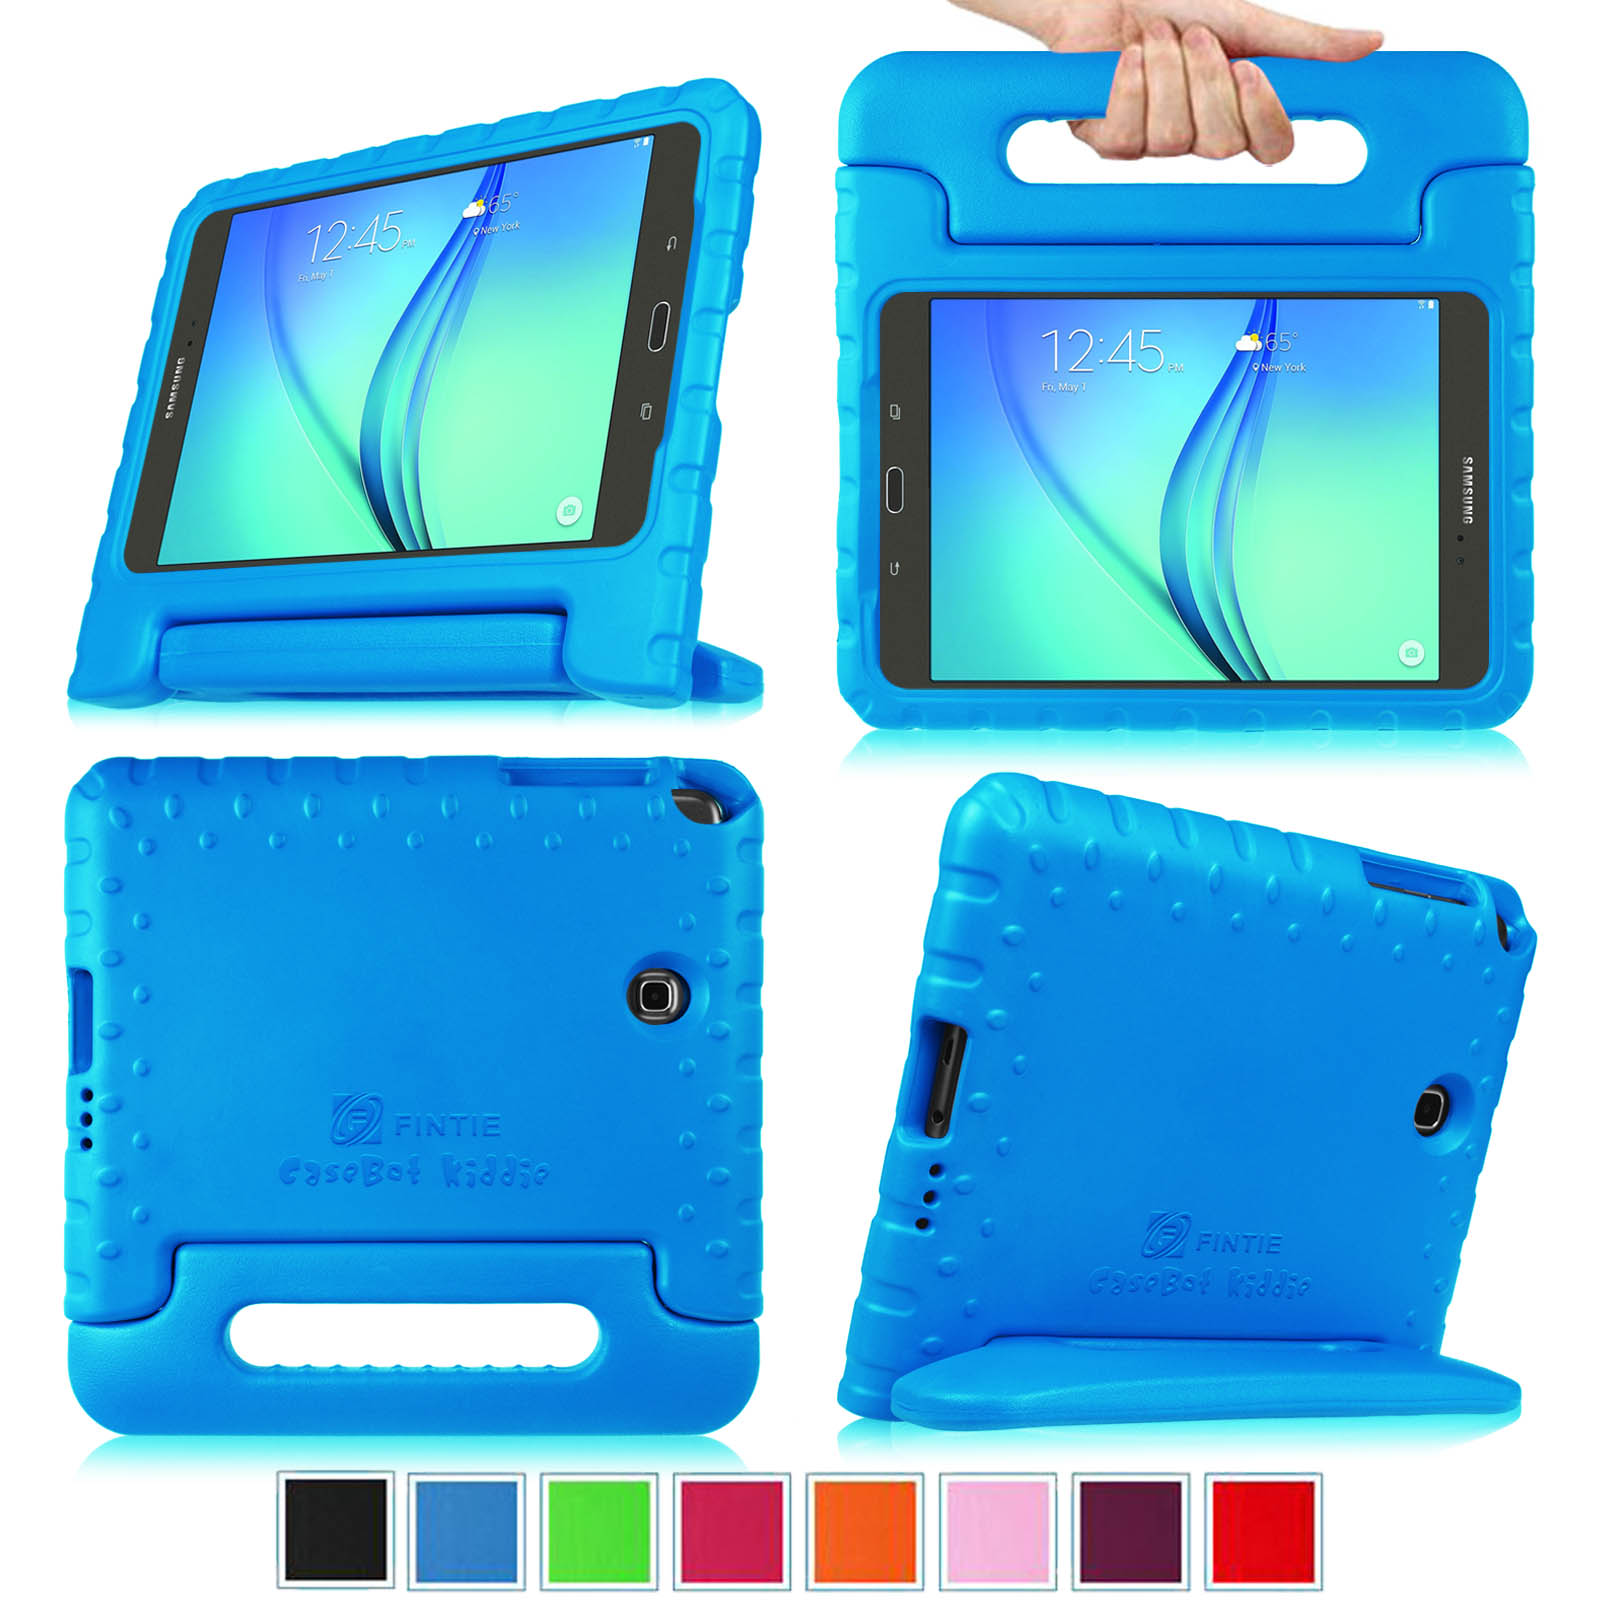 Samsung Galaxy Tab A 8.0 Inch SM-T350 Tablet Kiddie Case - Fintie Lightweight Shock Proof Handle Stand Cover, Blue